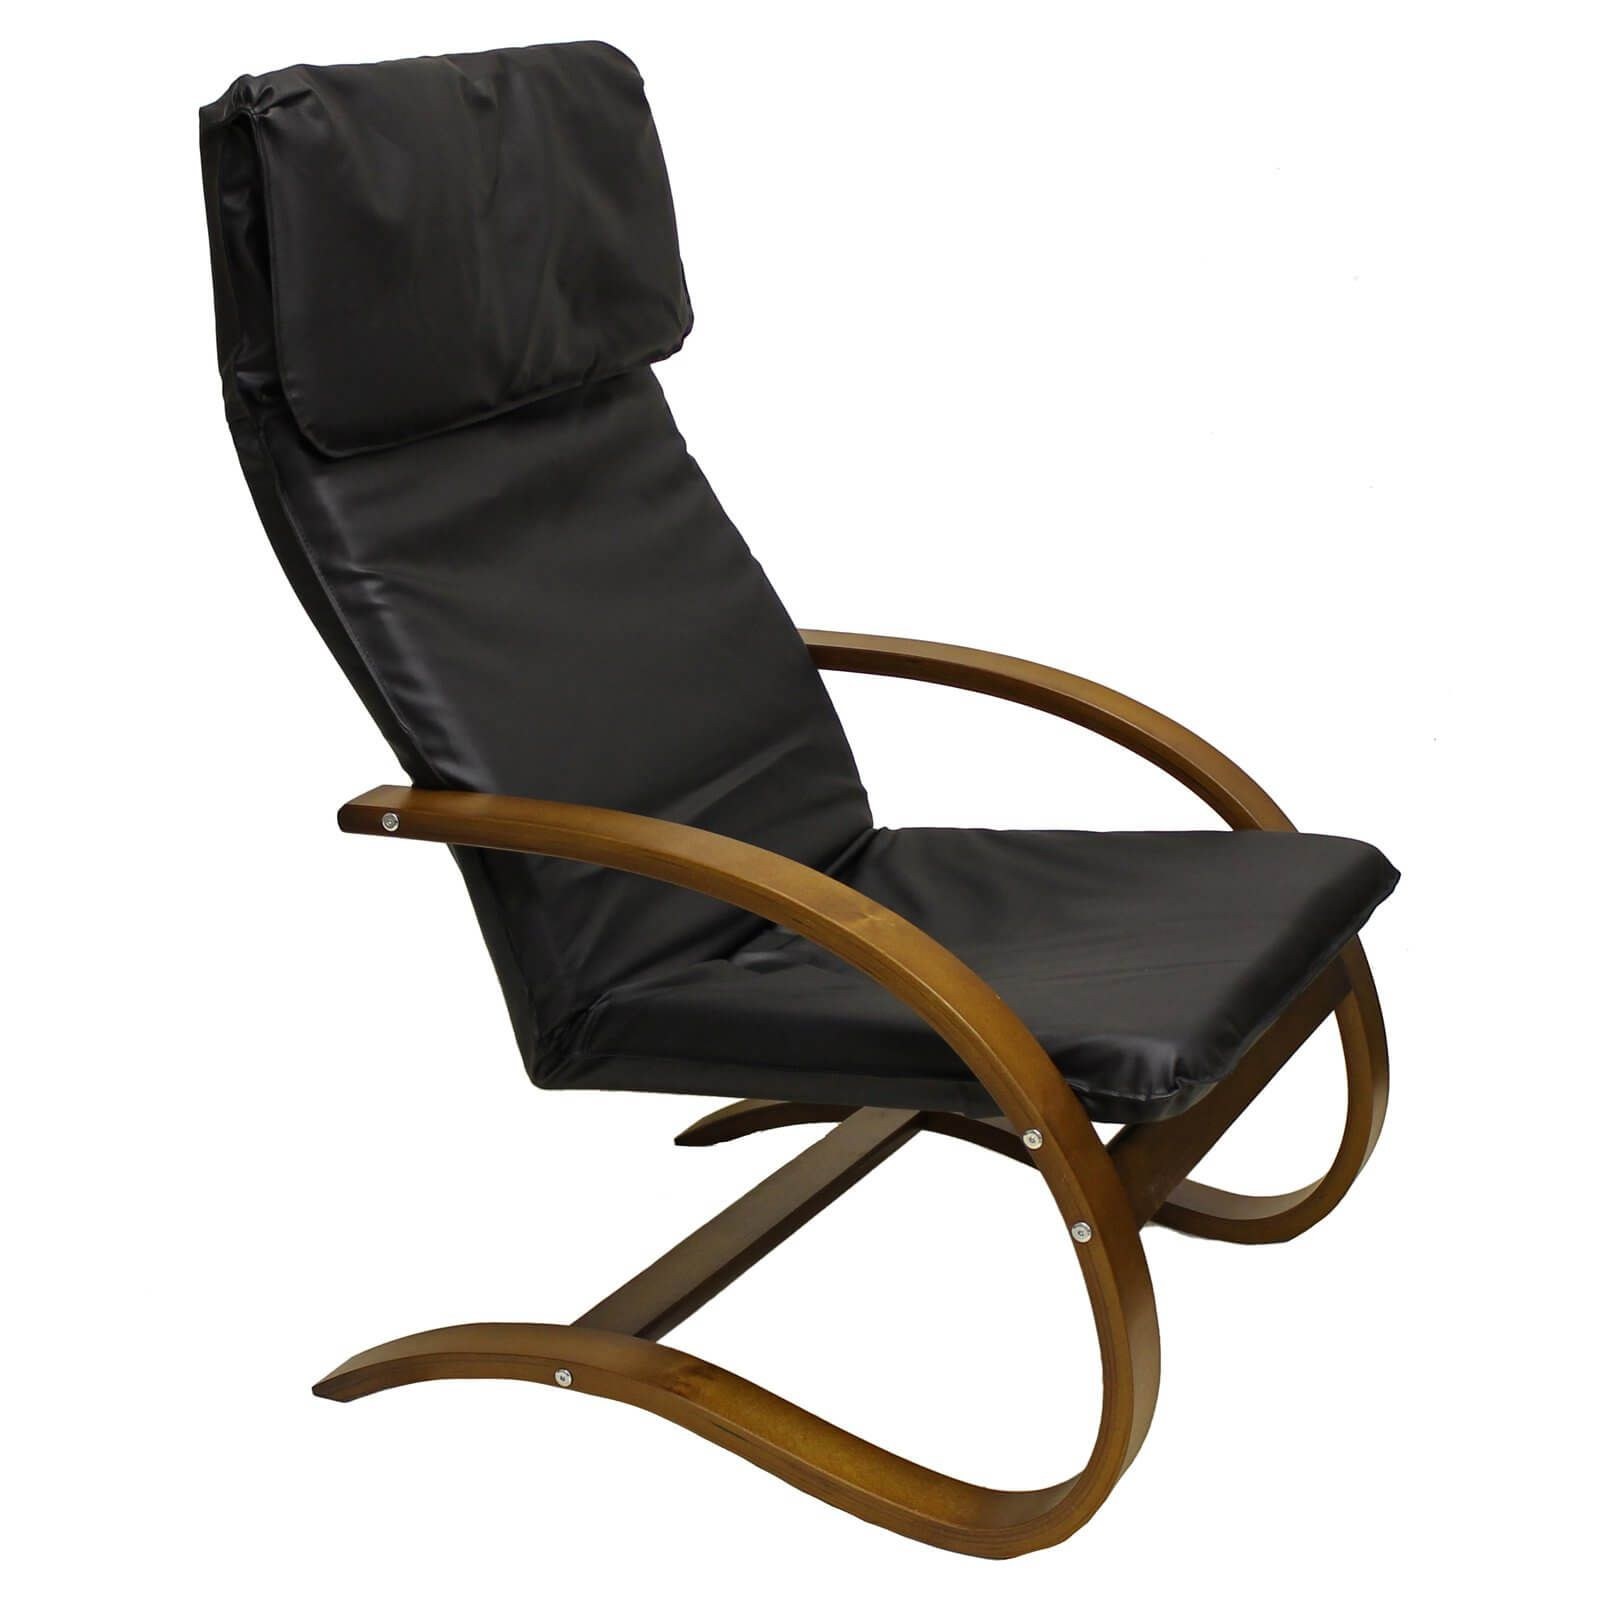 The Stockholm Lounge Chair Fuses Together The Elegant And The Contemporary  Into A Distinctively European Design. Featuring Comfortable Faux Leather ...